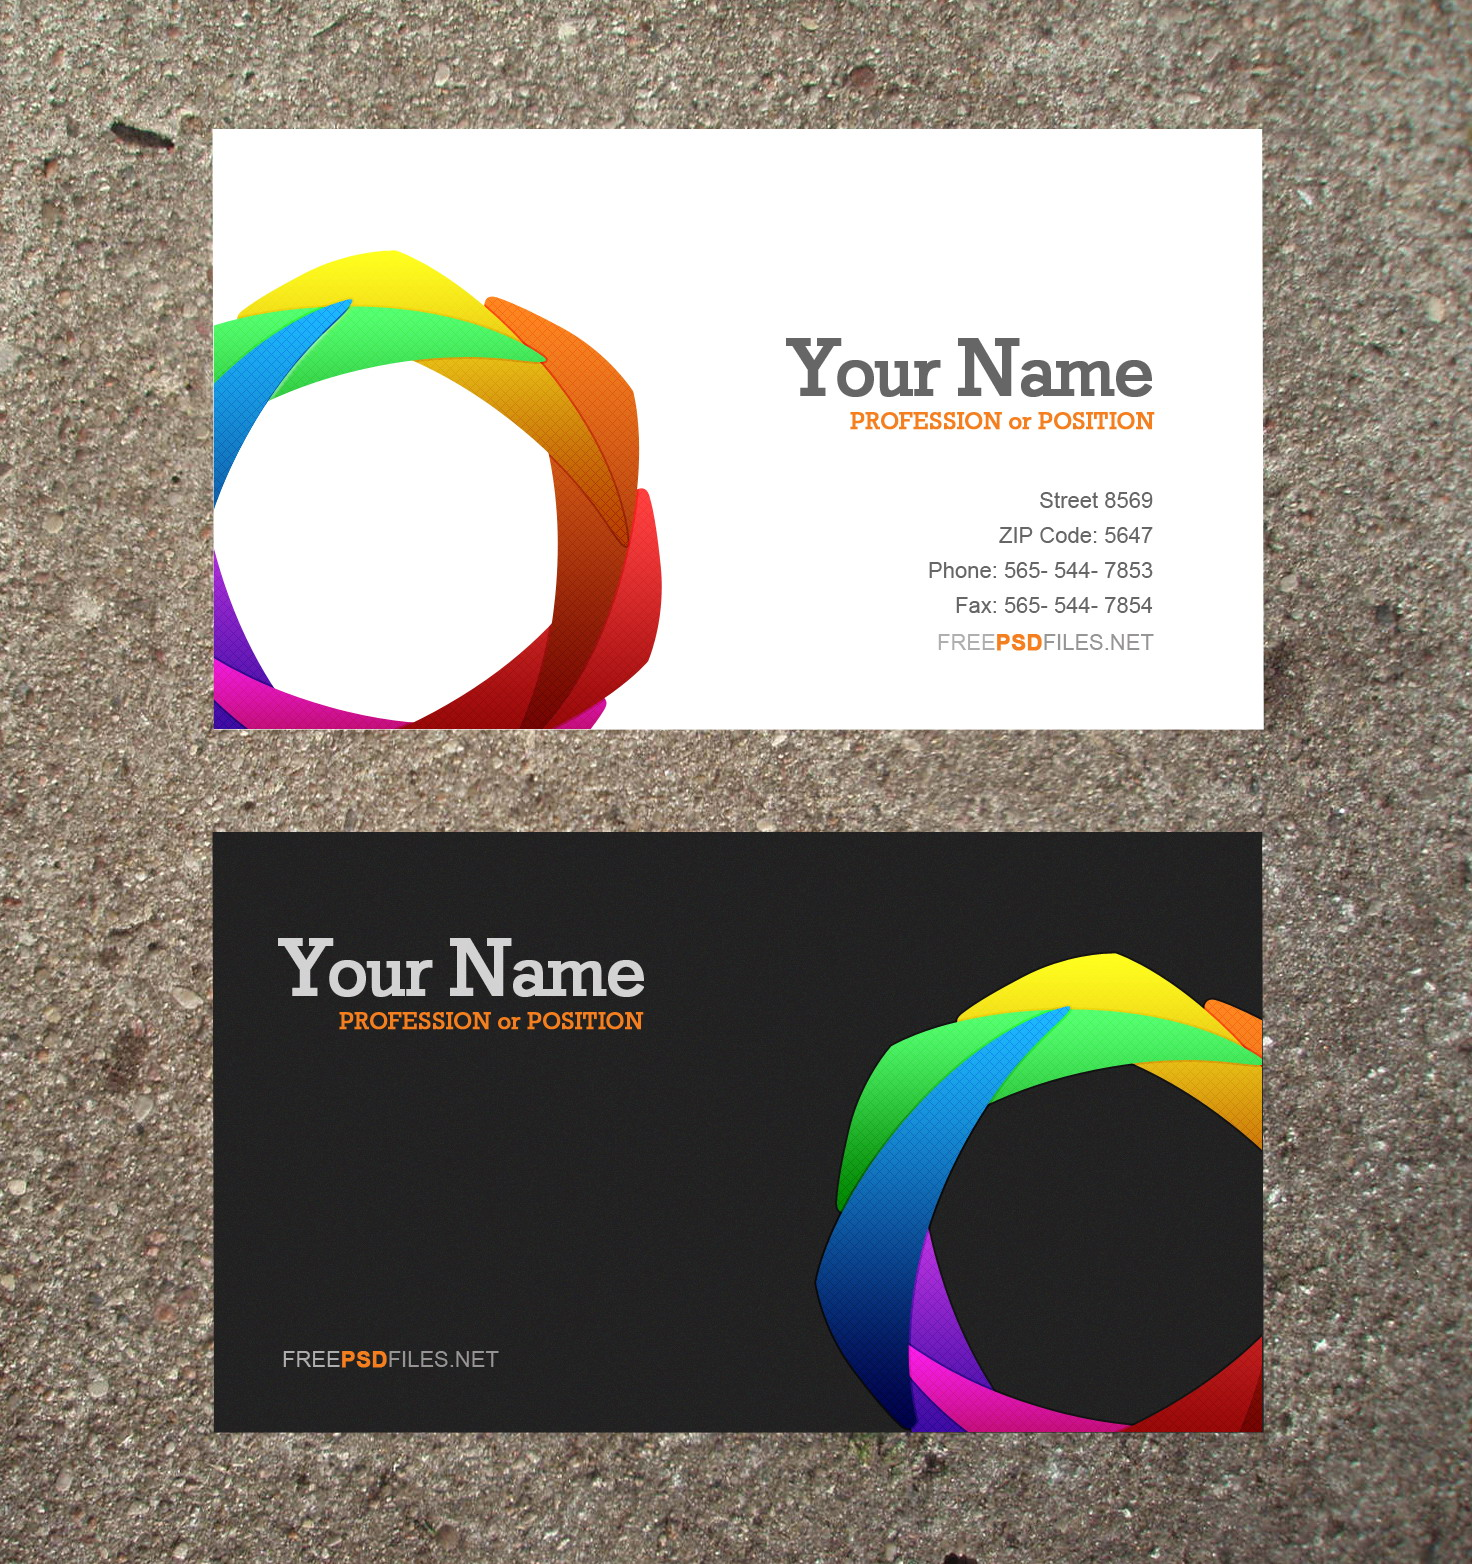 business card template - Ideal.vistalist.co